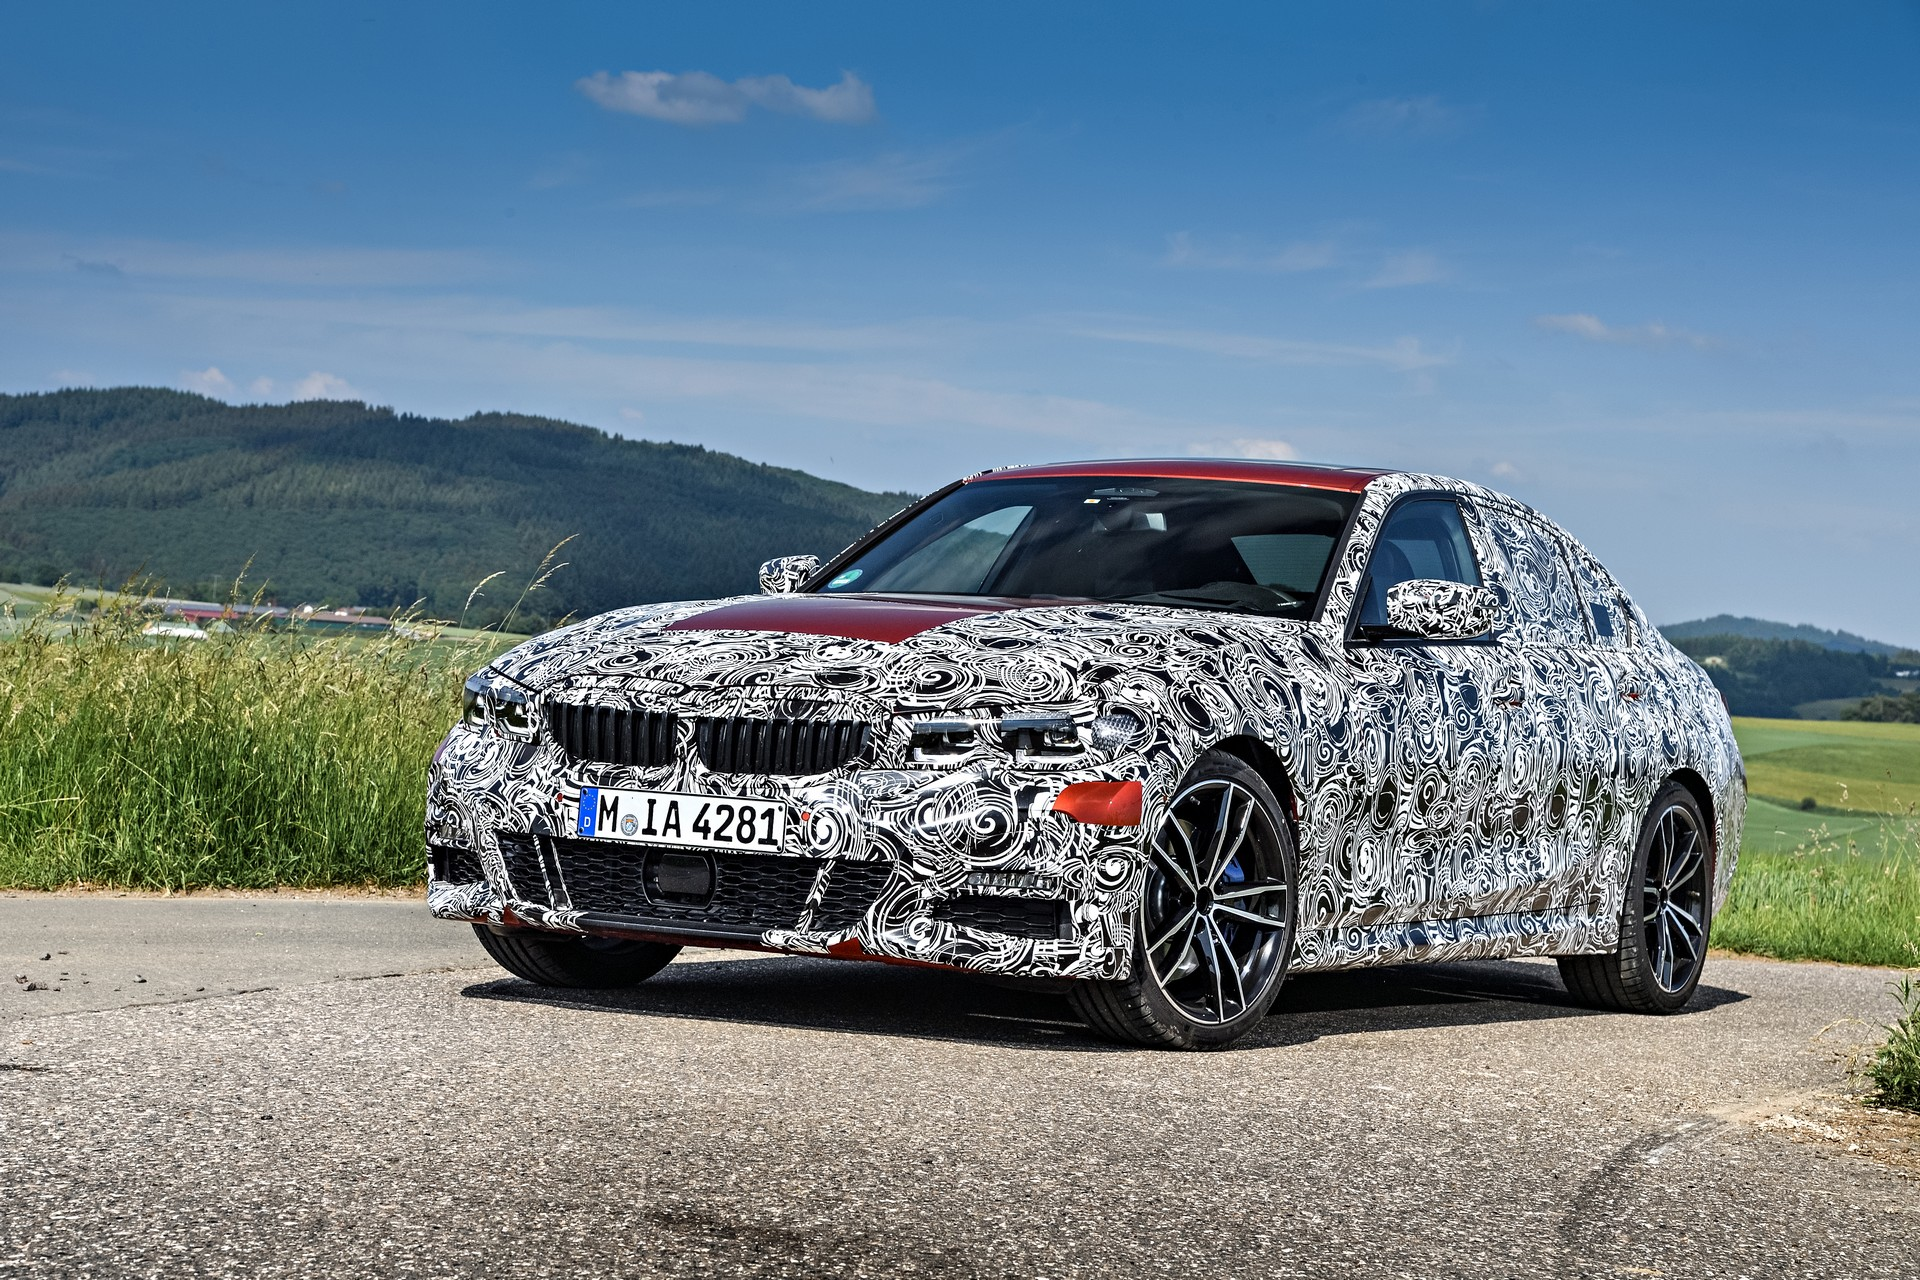 494e5a1d-bmw-3-series-prototype31.jpg